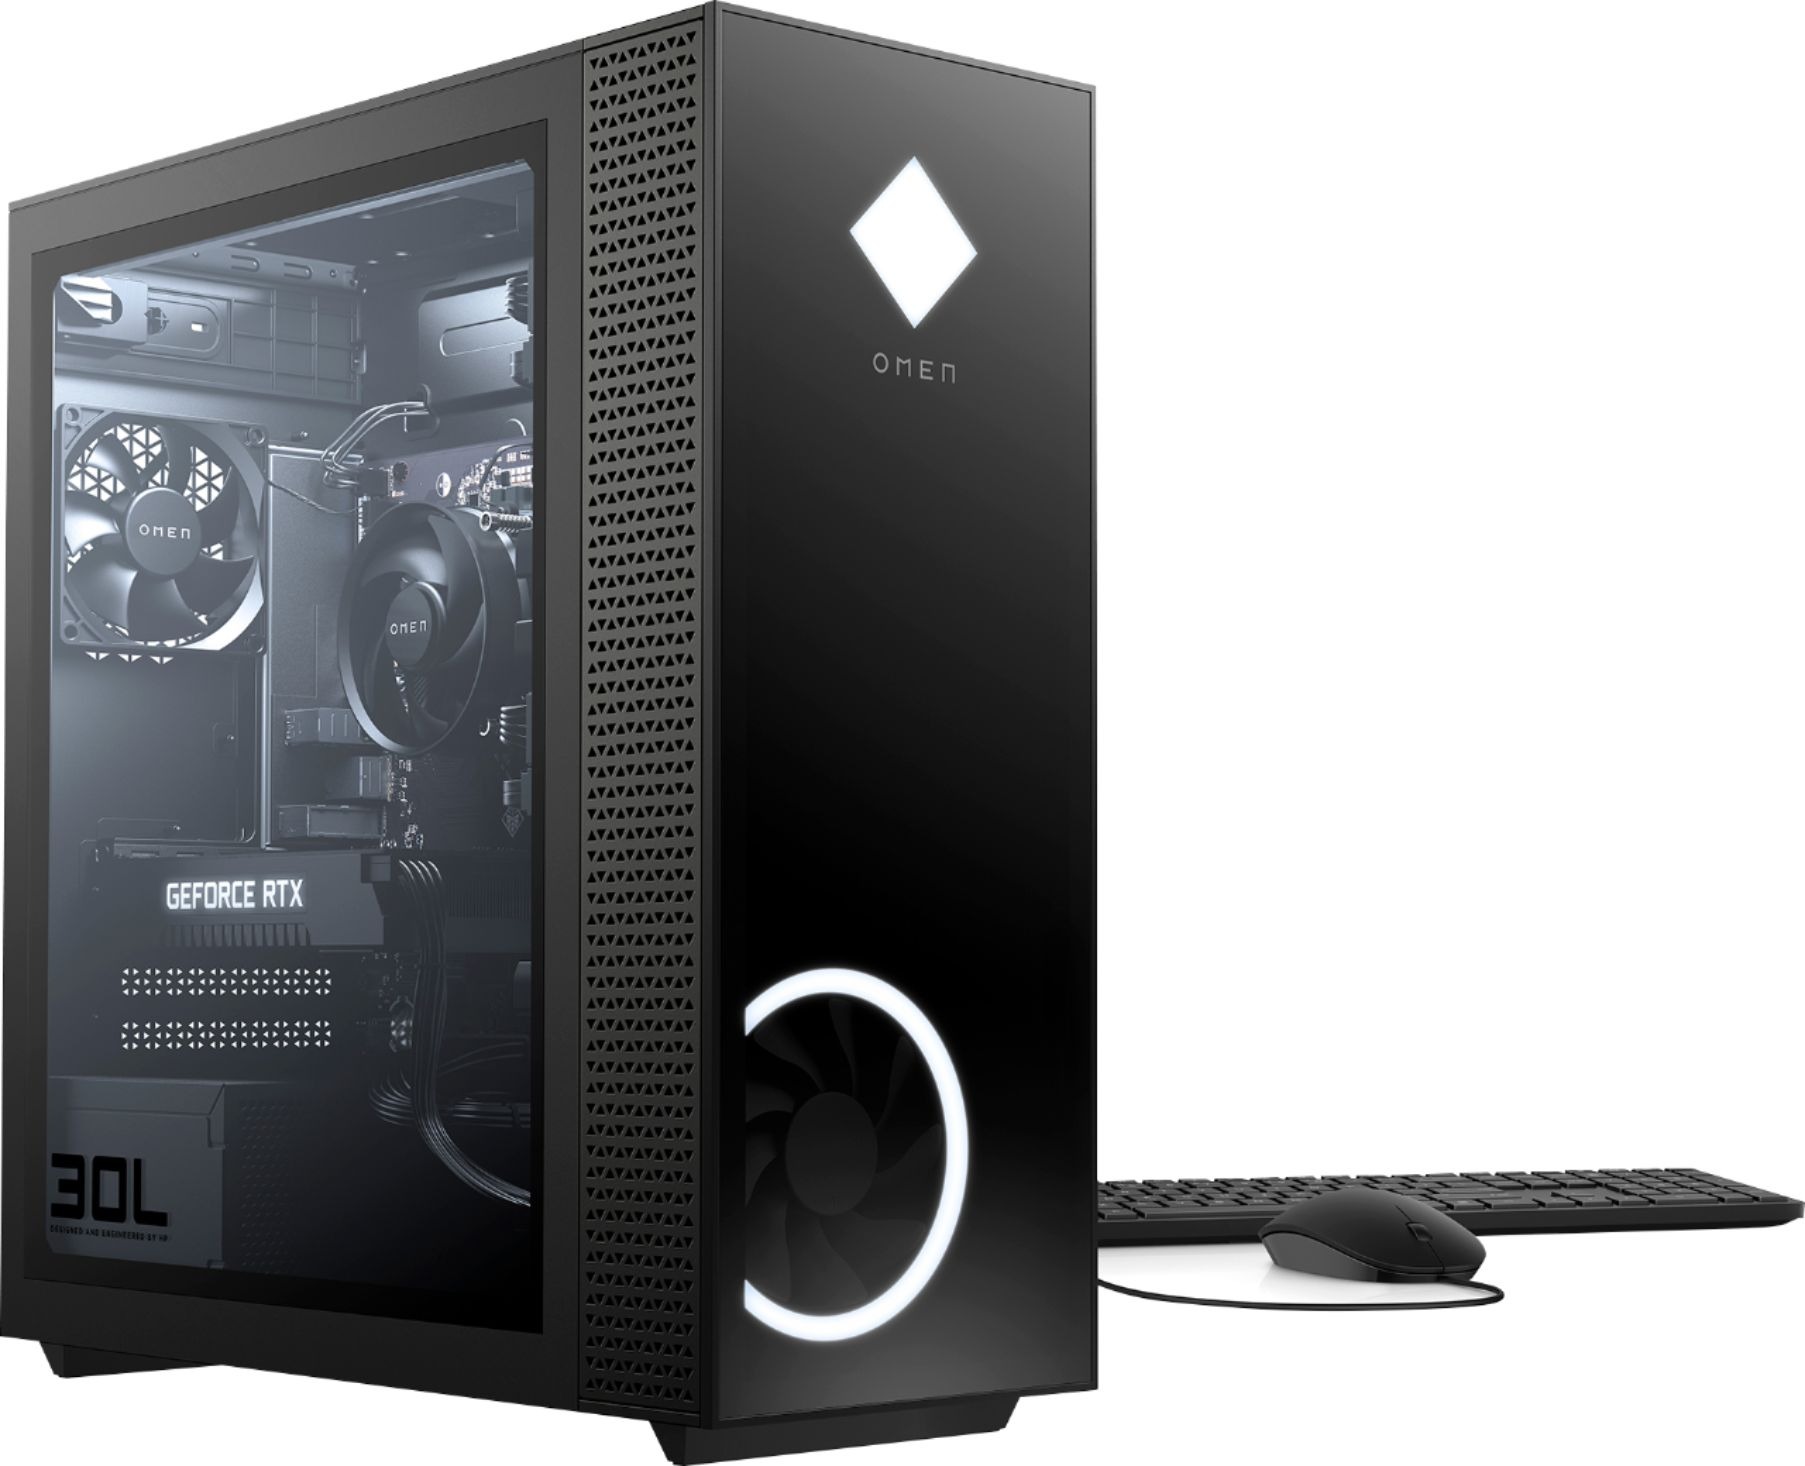 Angle Zoom. HP OMEN - 30L Gaming Desktop - AMD Ryzen 7-Series - 3700X - 16GB Memory - NVIDIA GeForce RTX 2060 - 1TB HDD + 256GB SSD - Black.